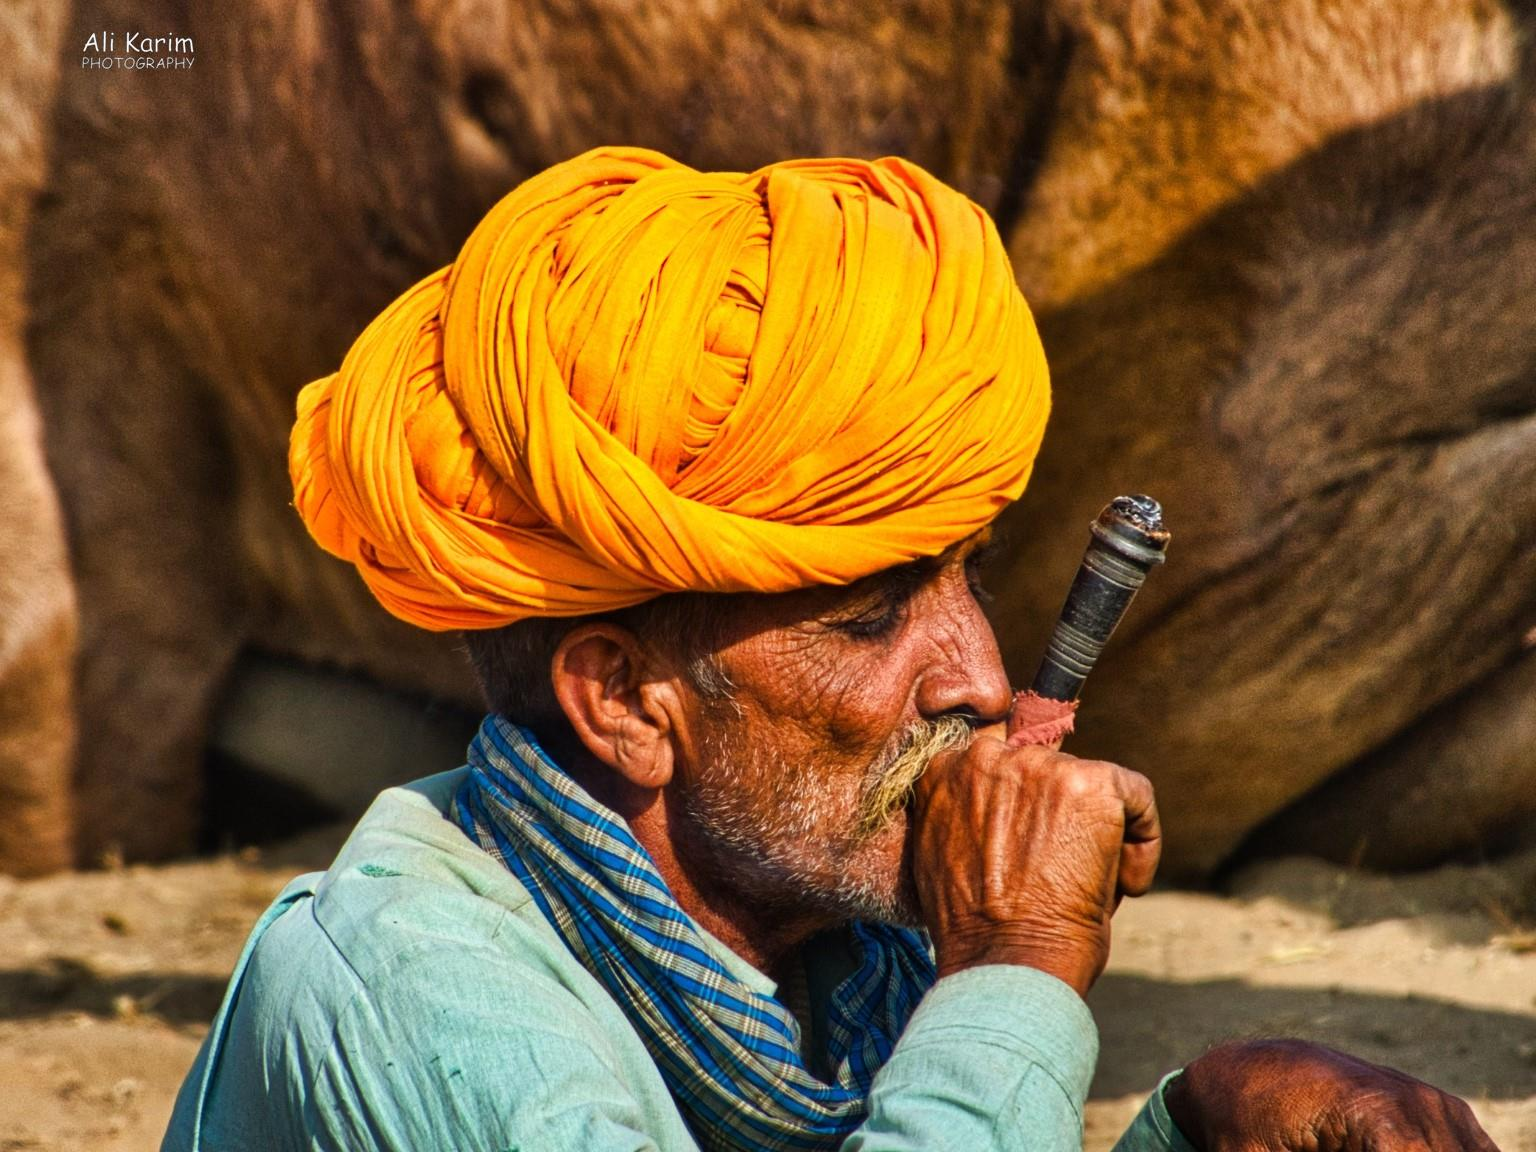 Pushkar, Rajasthan Passing the time smoking, while waiting for buyers for their camels